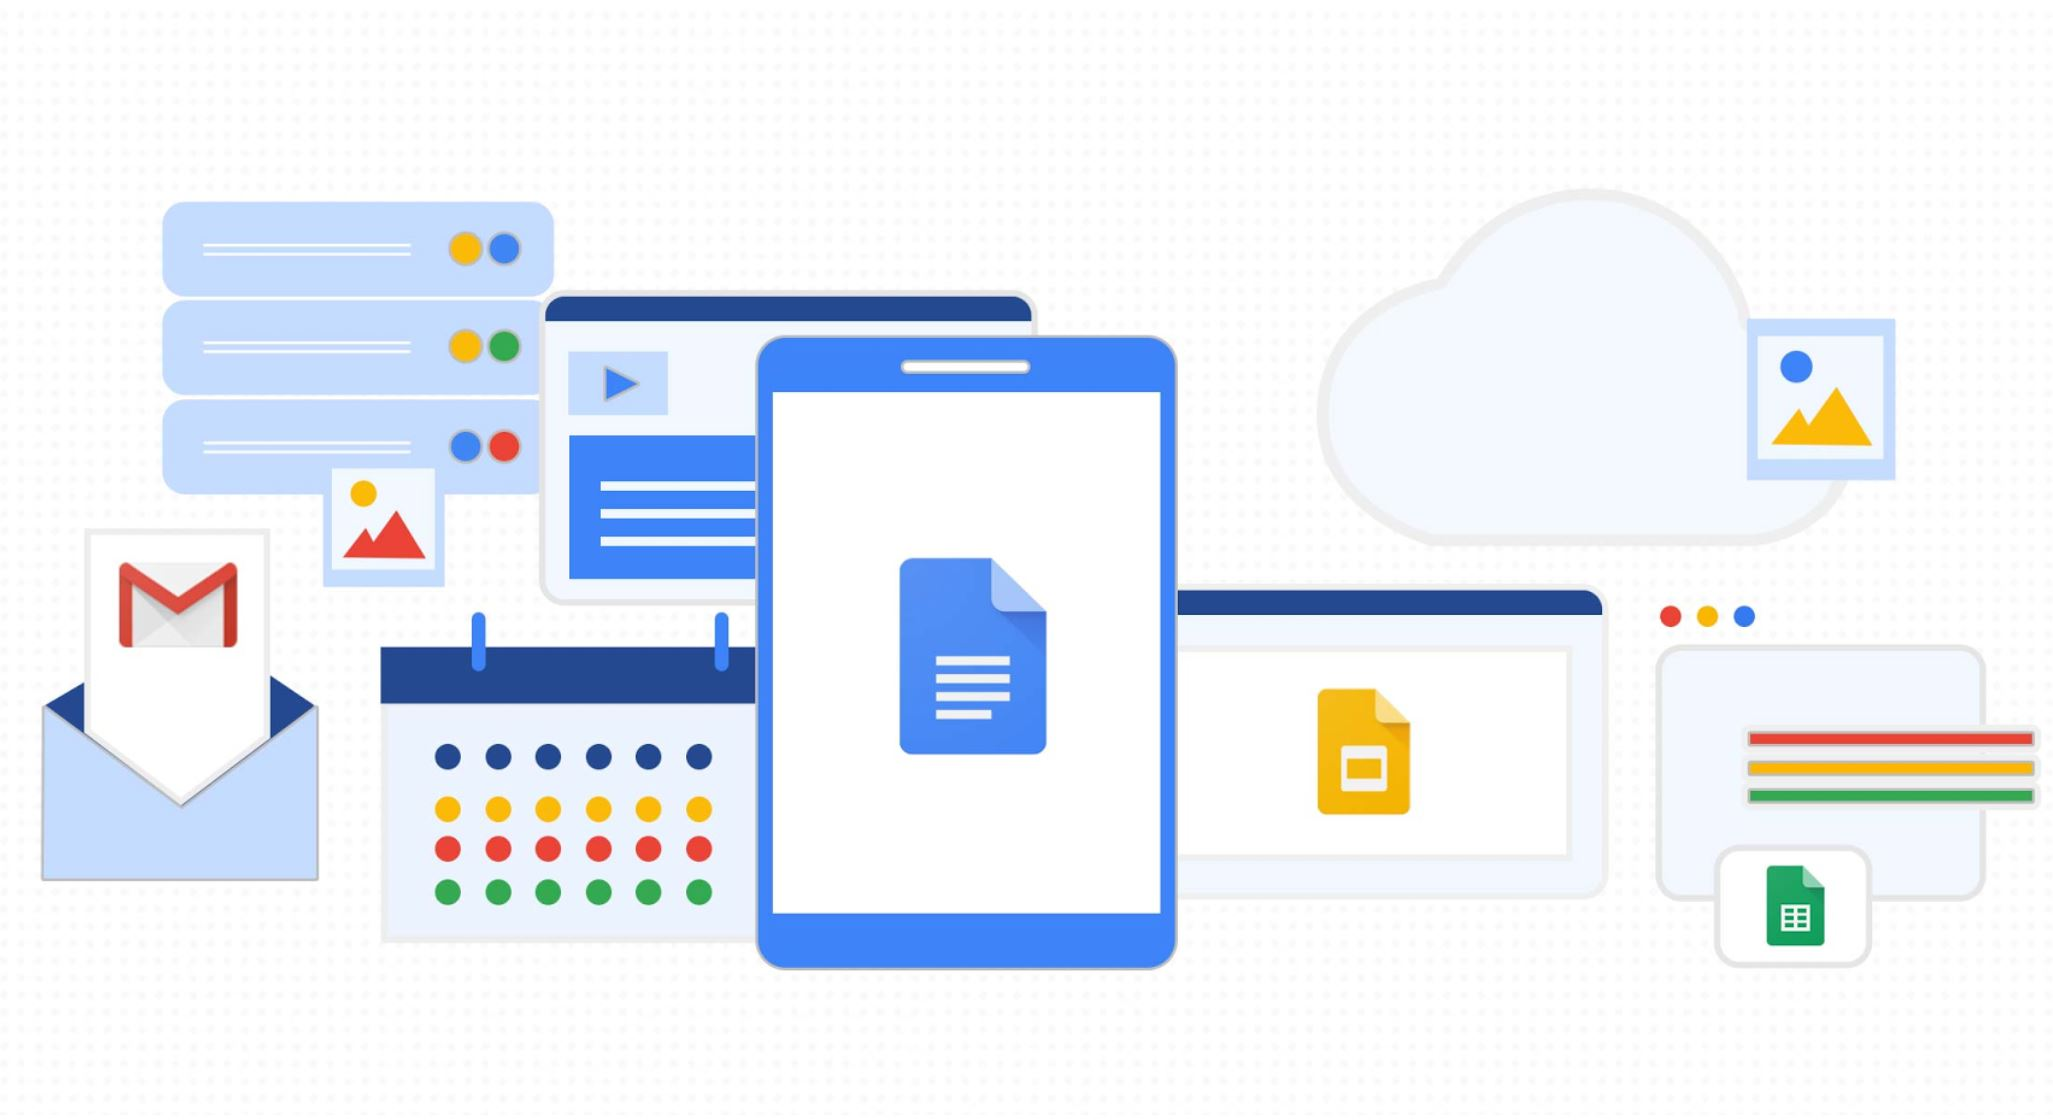 Google Docs, Sheets, and Slides apps to get better